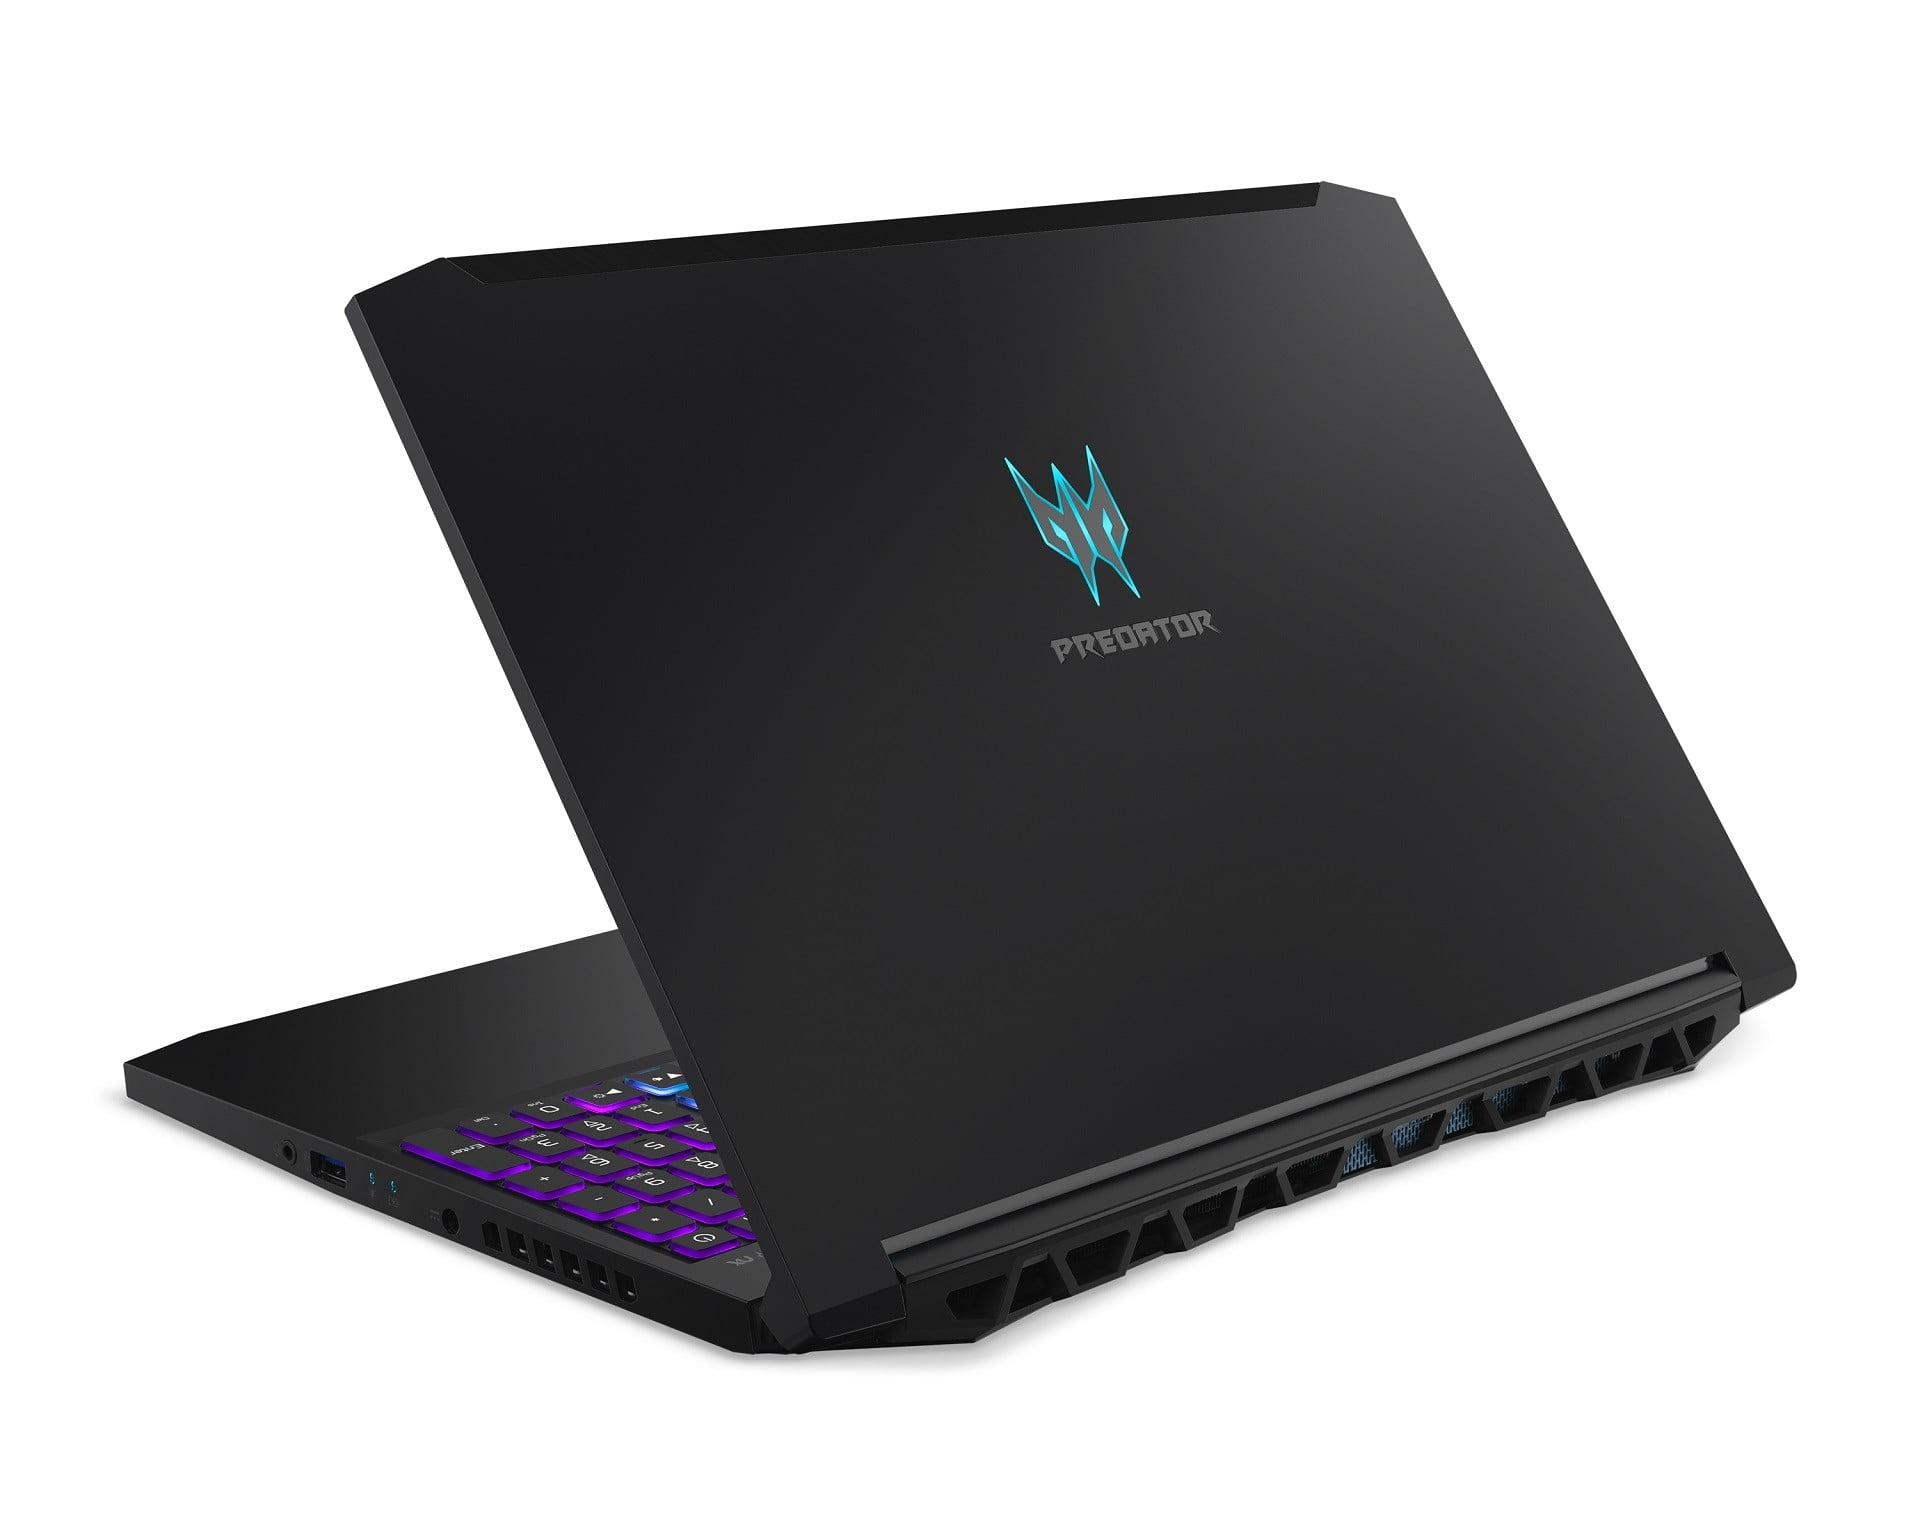 Acer Predator Triton 500 is an unstoppable gaming laptop with a 300Hz screen